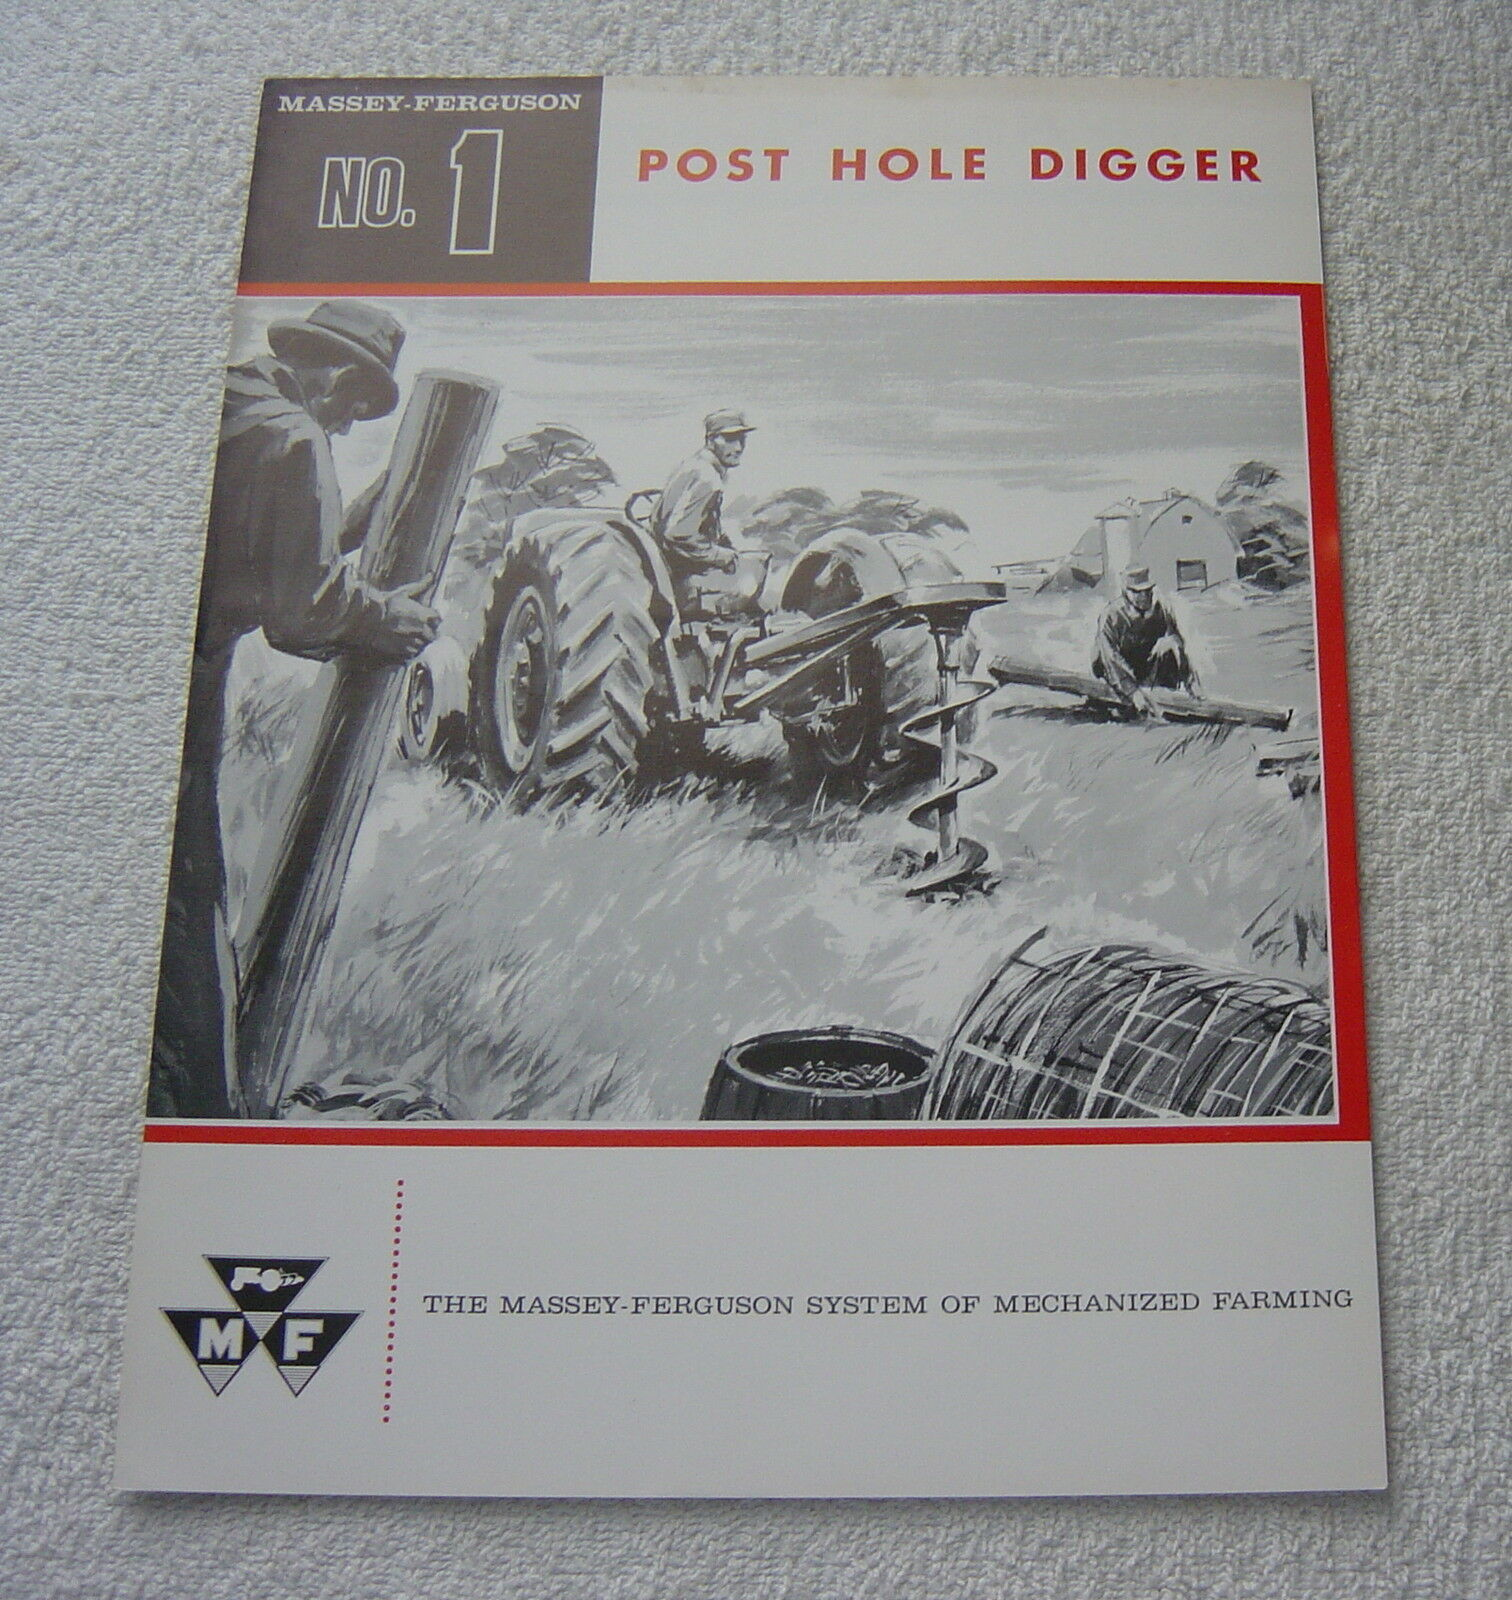 MASSEY FERGUSON TRACTOR MF1 POST HOLE DIGGER c 1961 SALES BROCHURE 1 of  1Only 1 available ...